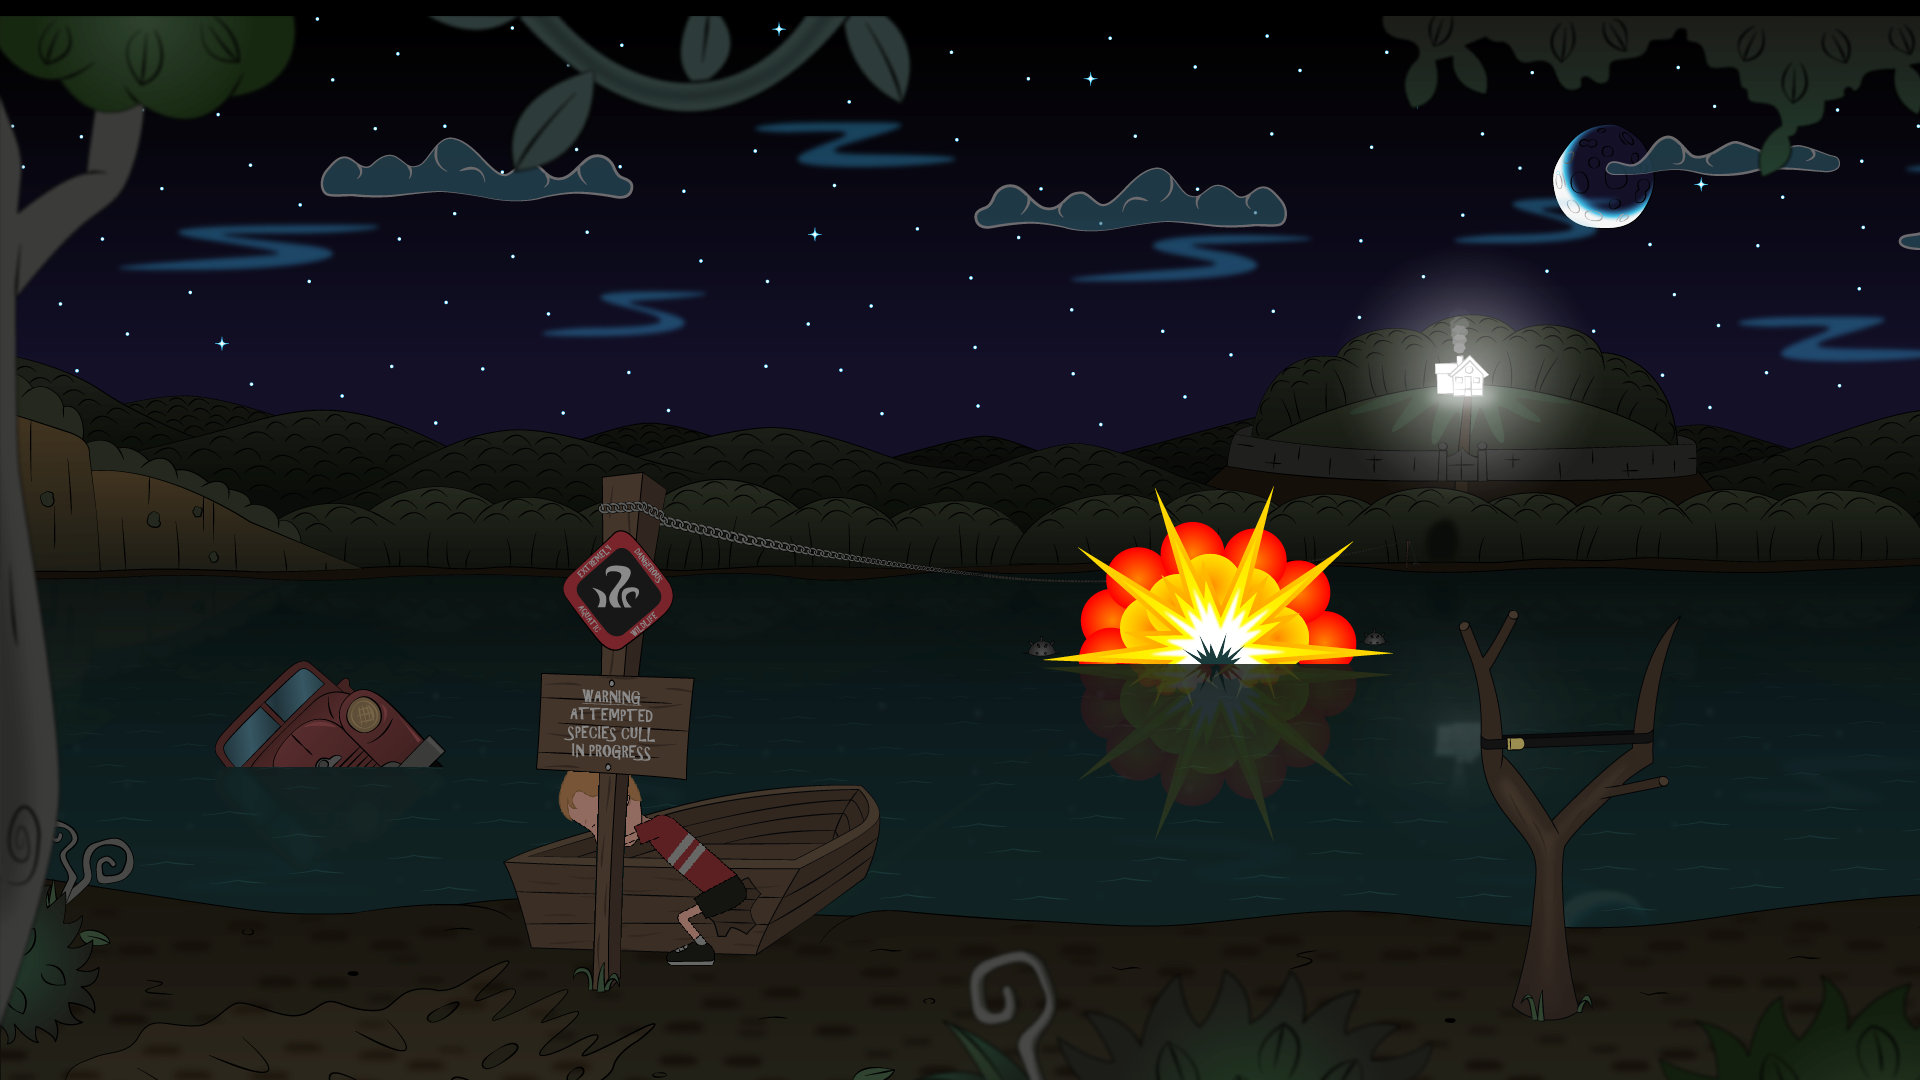 Screenshot 2 of Journey Home